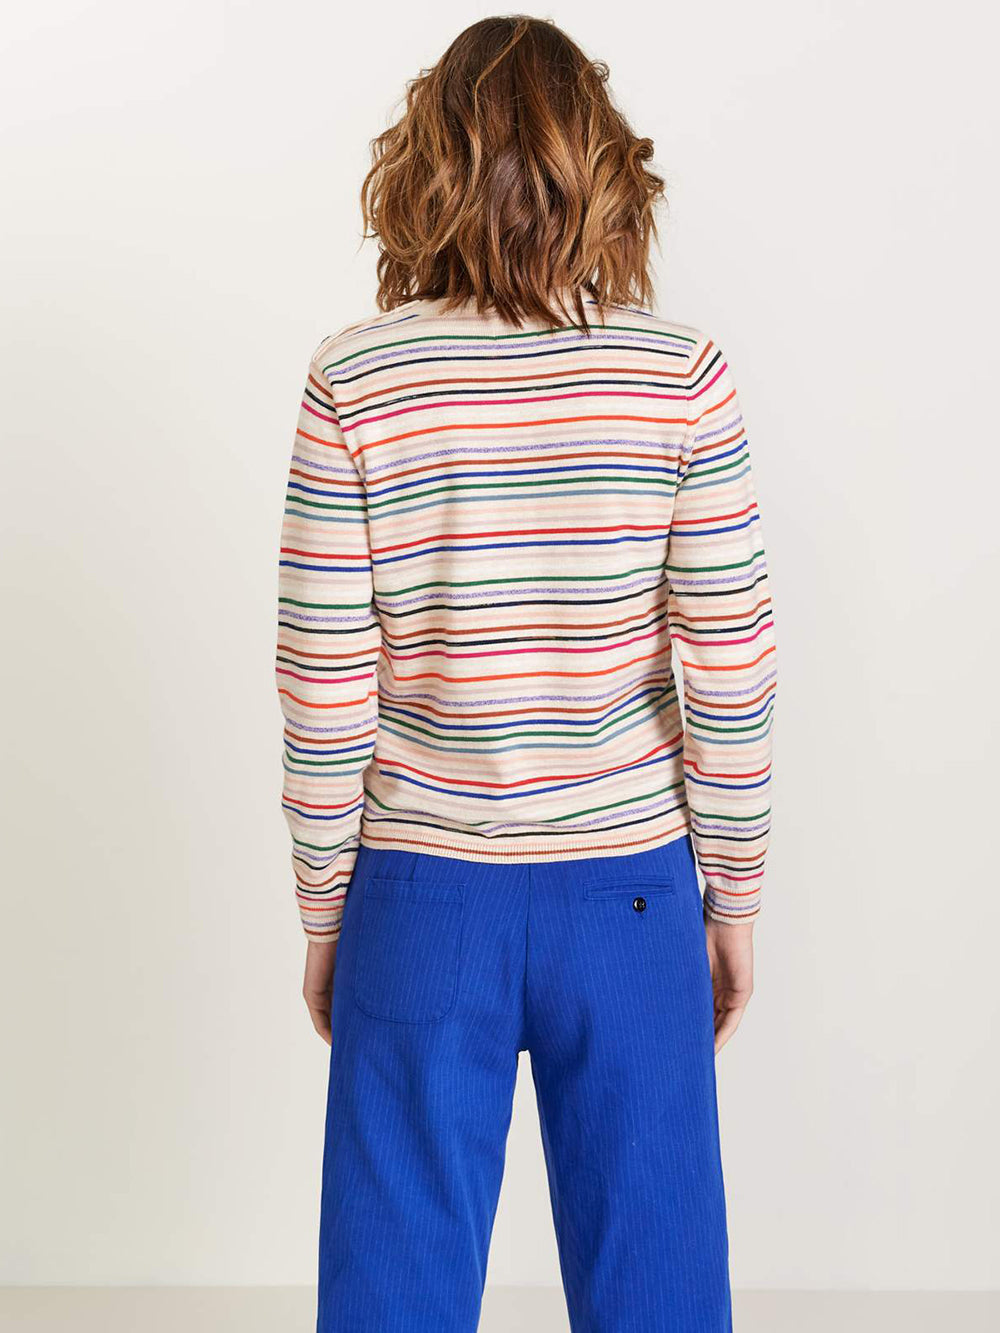 bellerose gopew sweater in stripe a